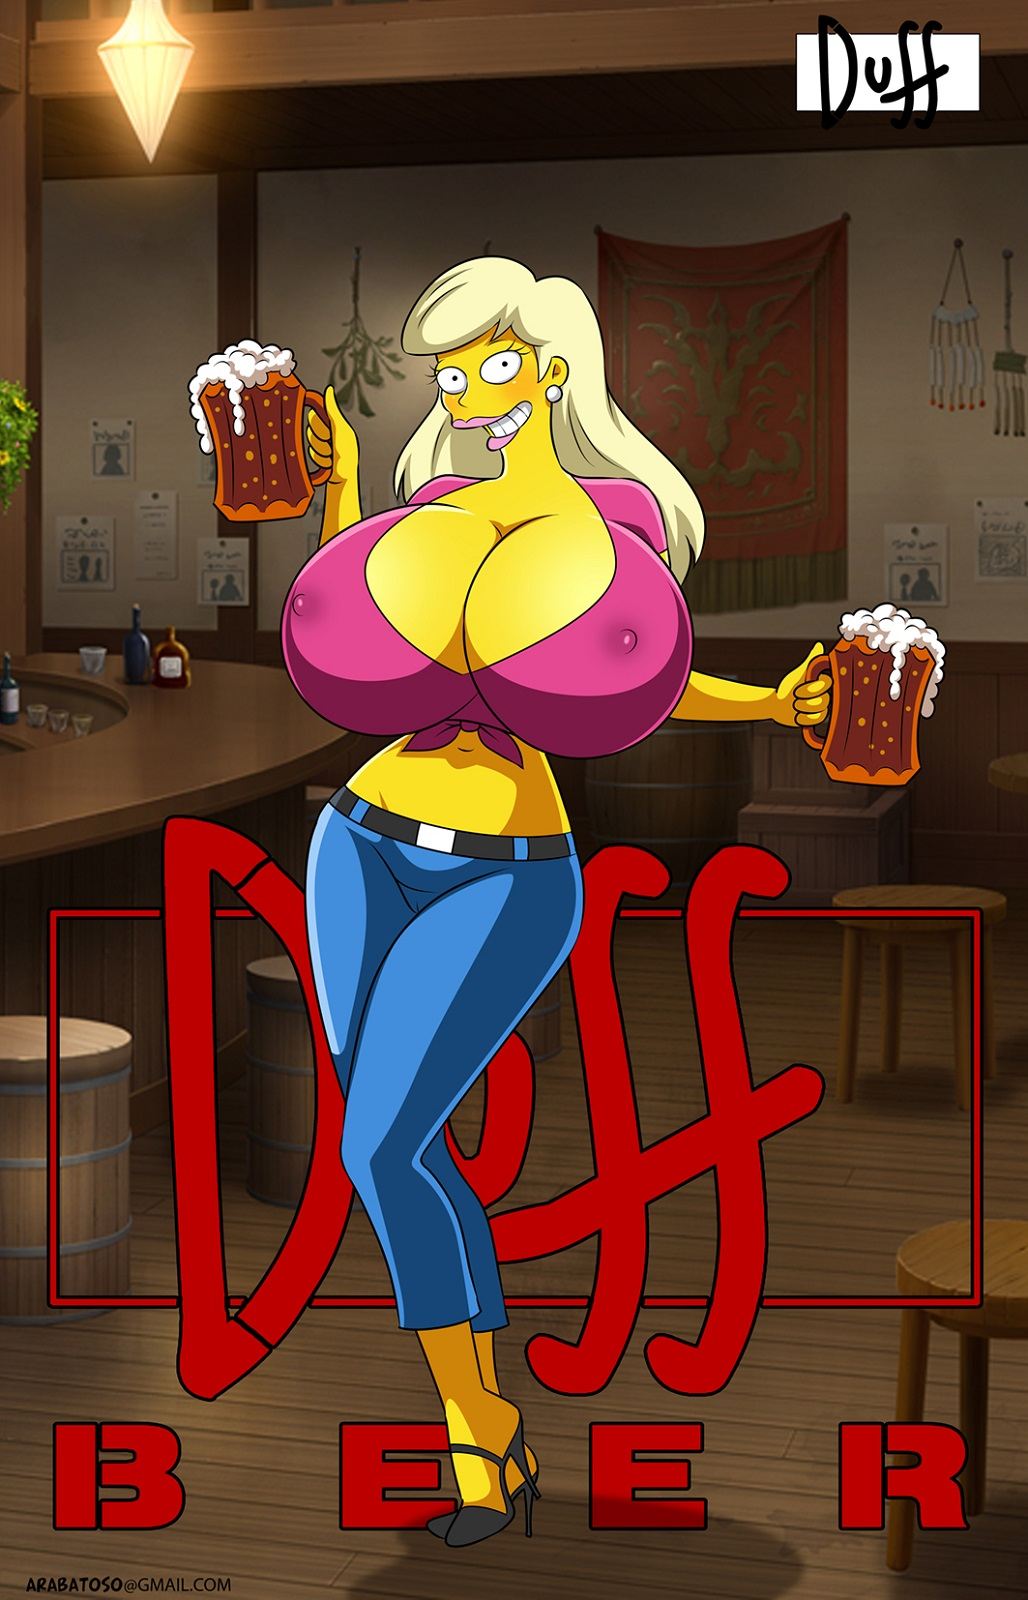 marge from the simpsons naked Kassandra assassin's creed